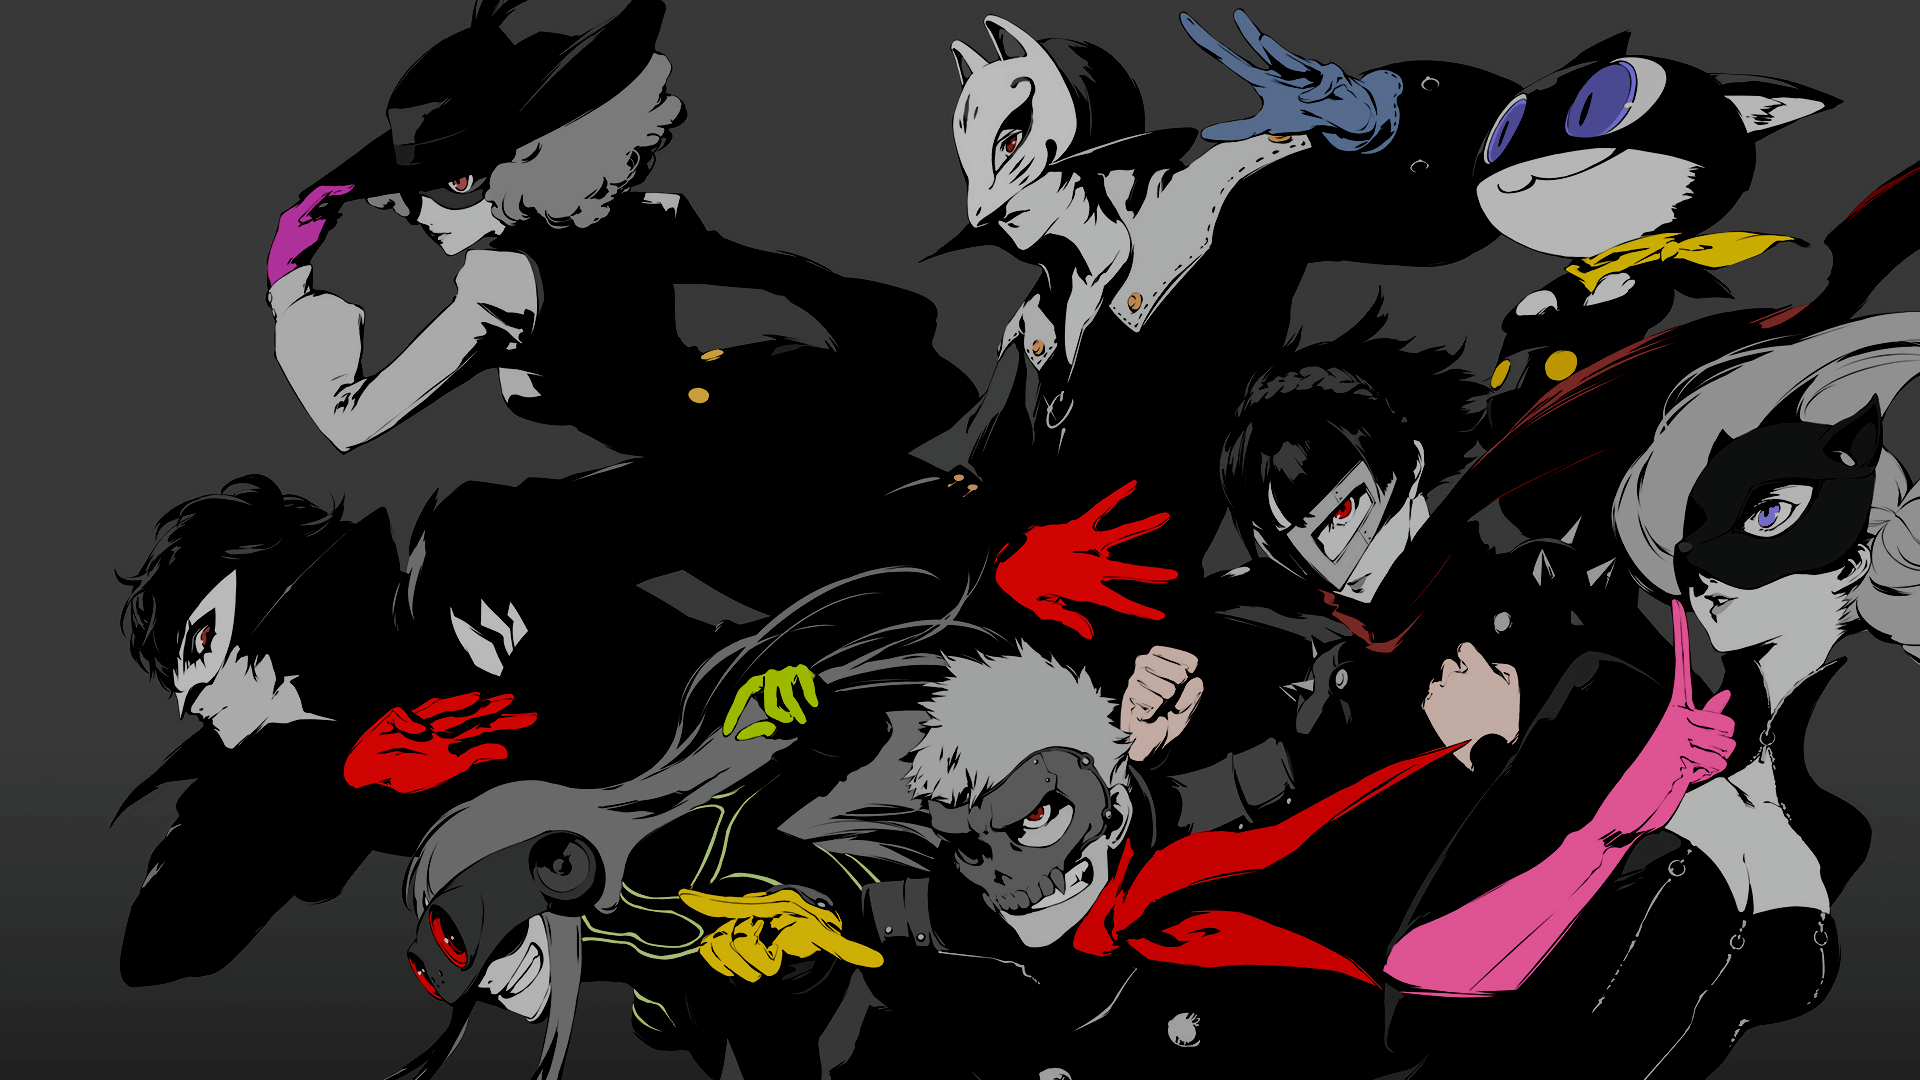 persona 5 joker wallpaper